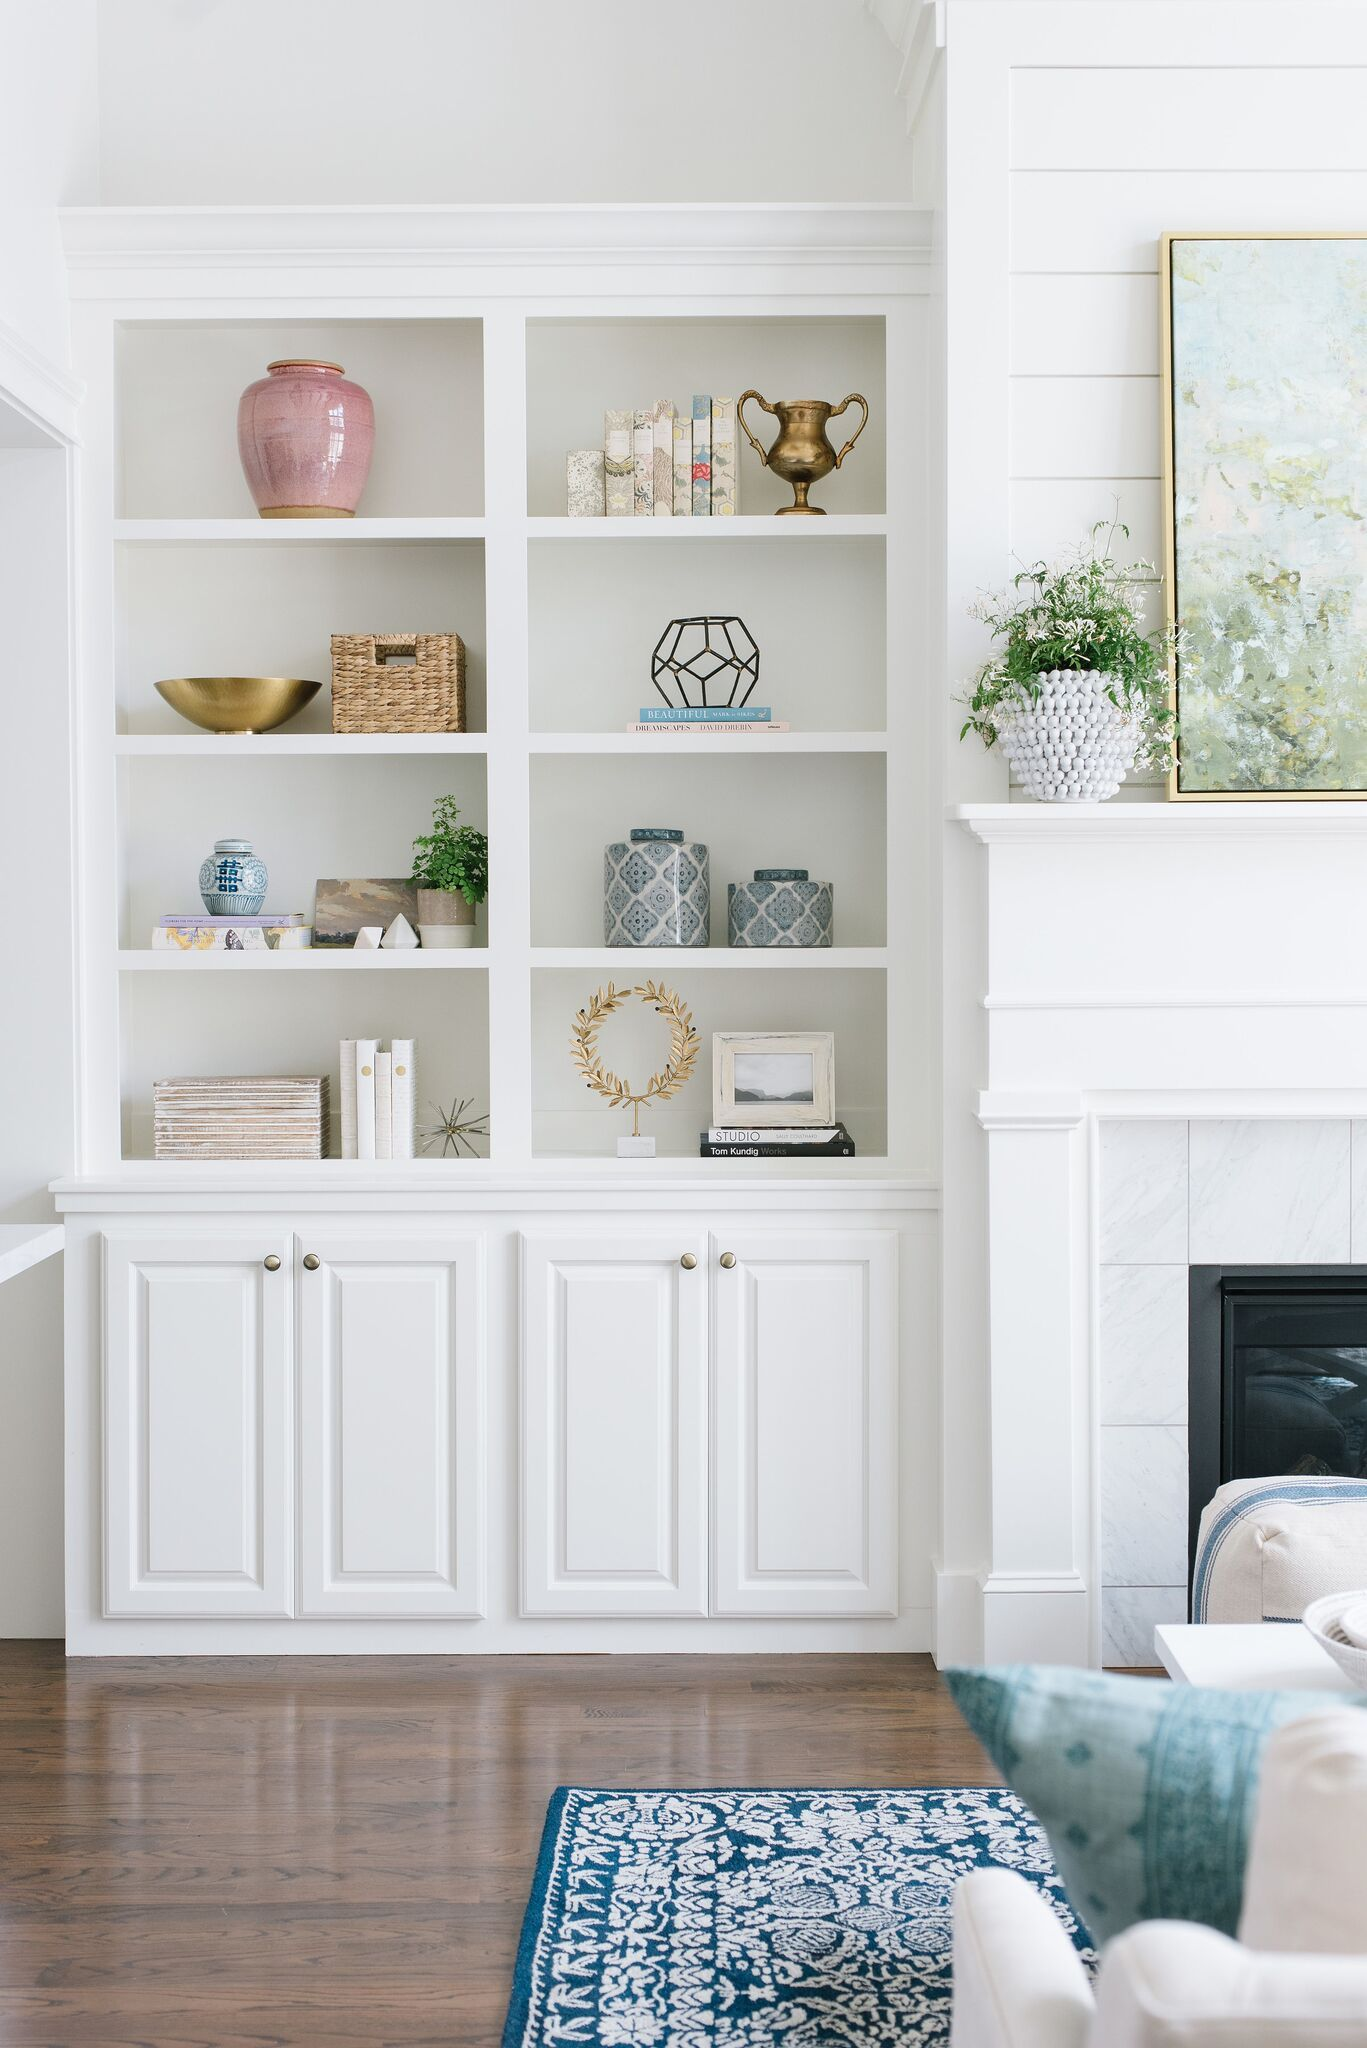 How To Design Around a Focal Point | Shelves, Inspiration and ...